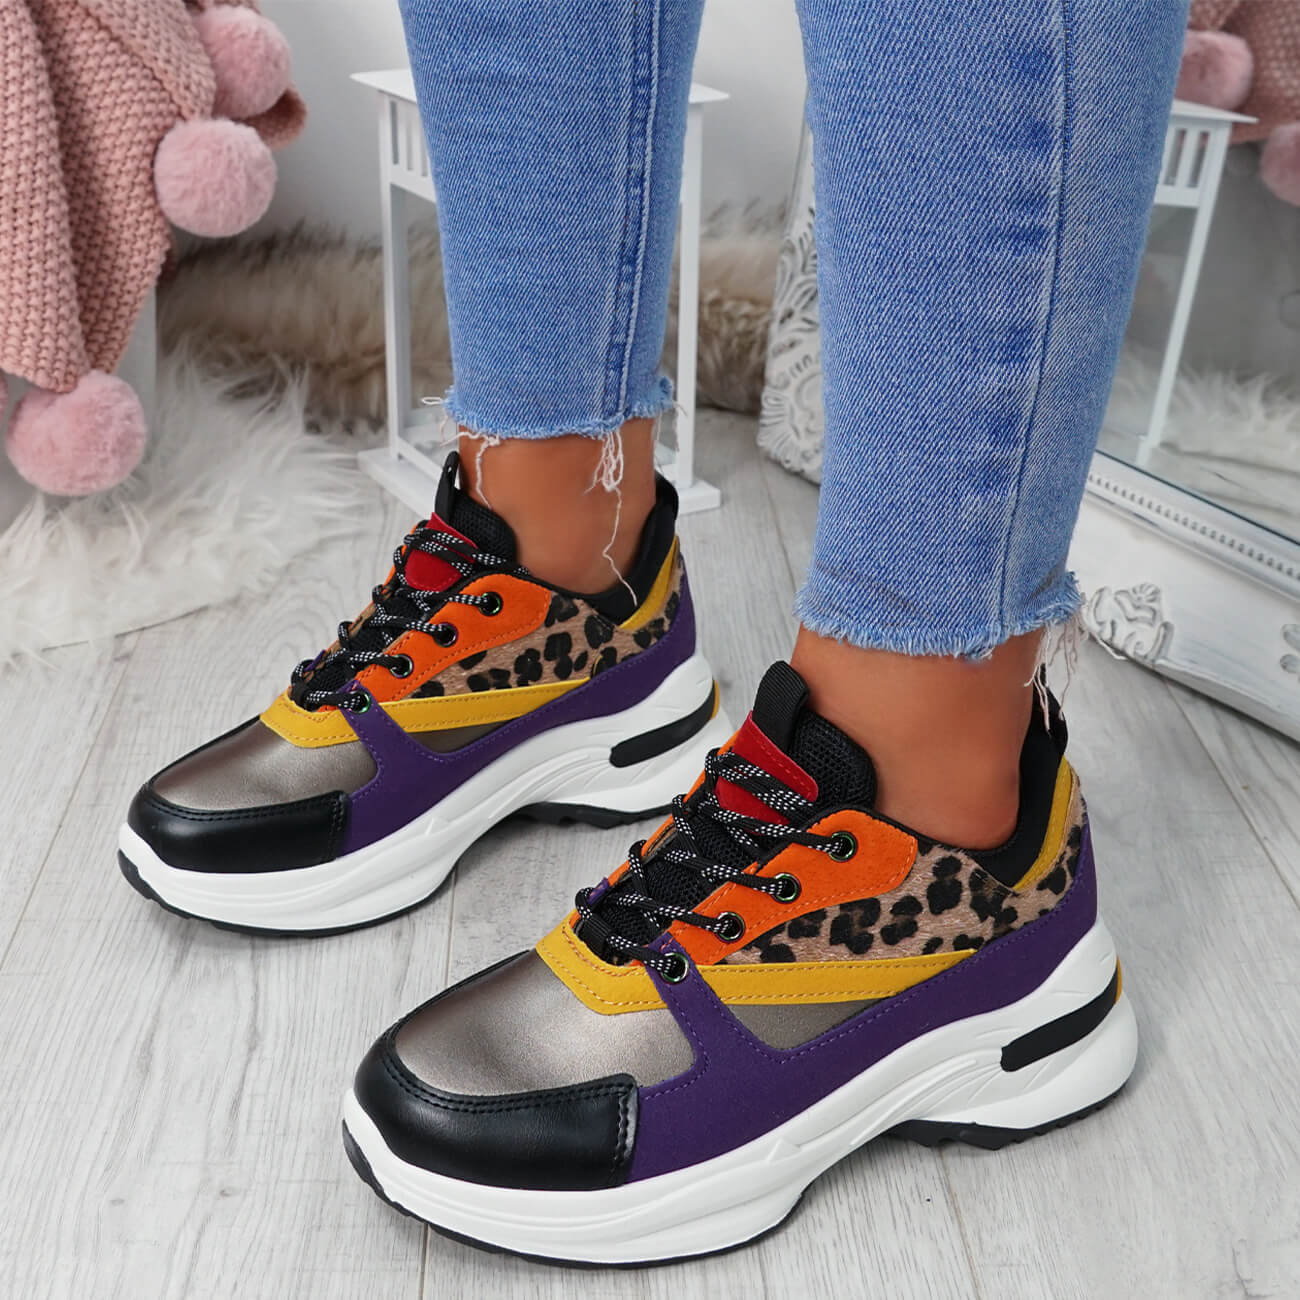 WOMENS-LADIES-LACE-UP-CHUNKY-TRAINERS-SNAKE-CROC-PATTERN-GLITTER-SHOES-SNEAKERS thumbnail 15